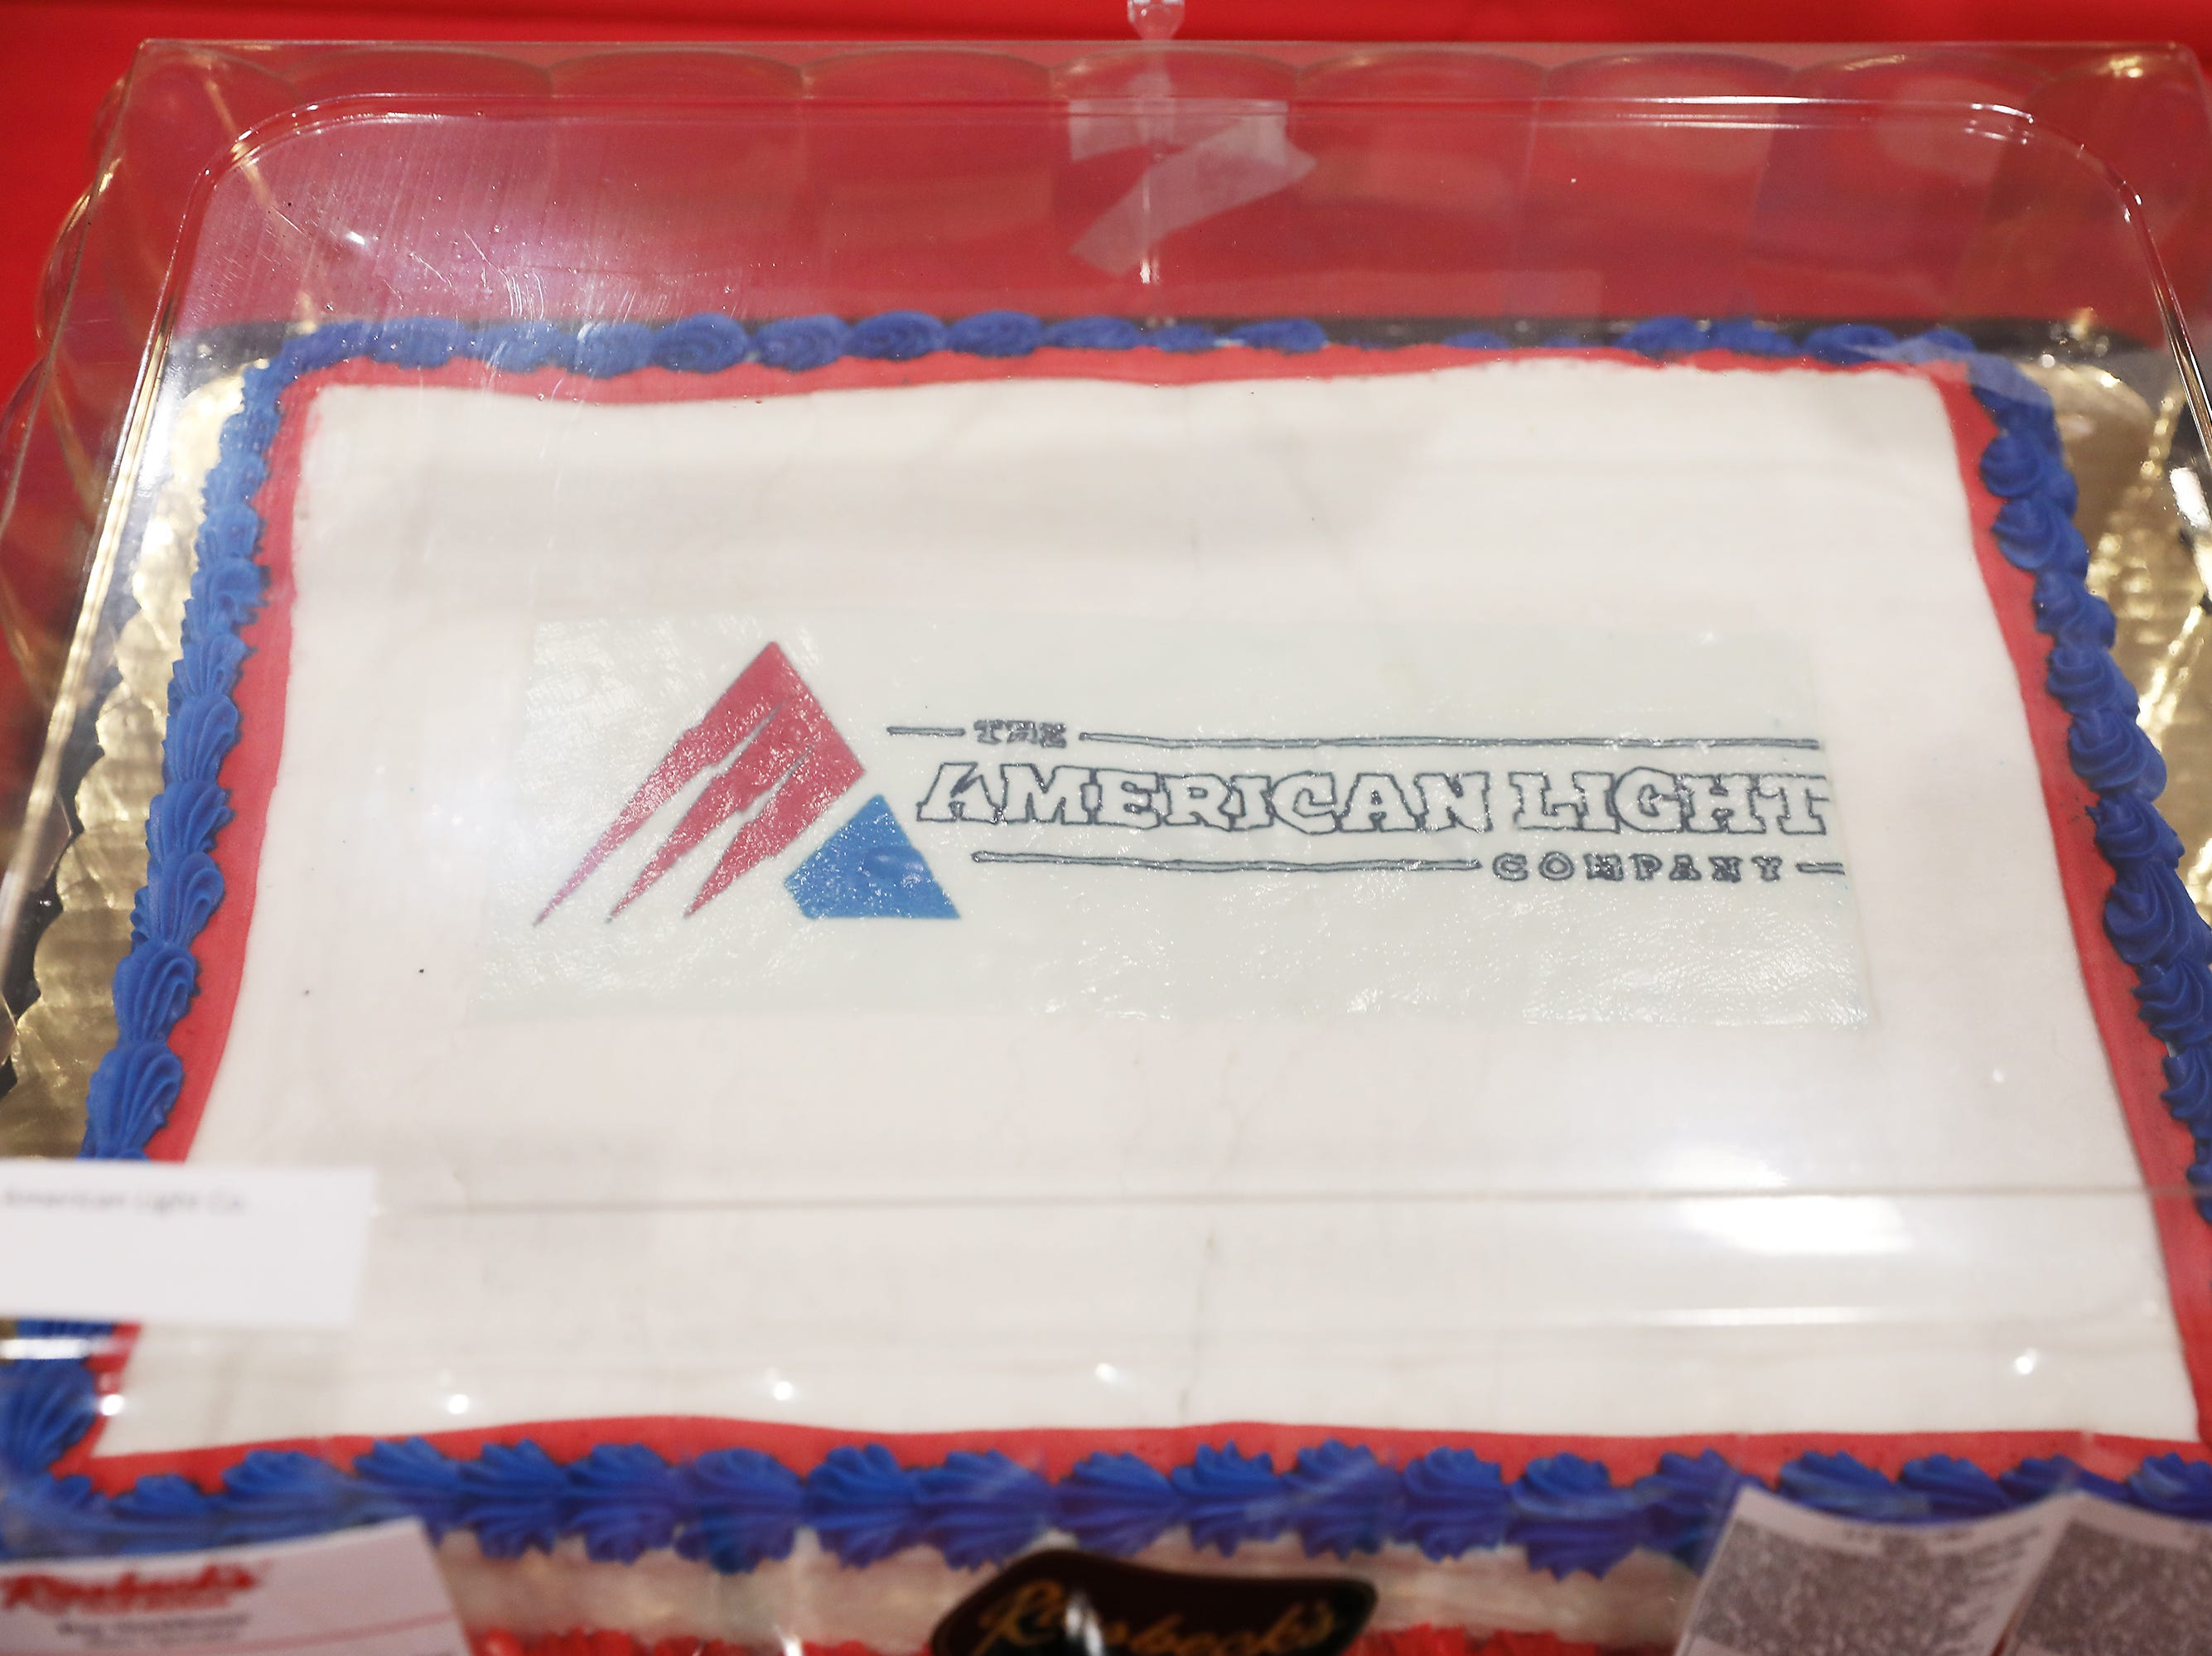 1:30 P.M. Friday cake 313 American Light Co. - Milwaukee M18 volt Packout kit with18v hammer drill impact driver, batteries, charger, tool box; $438